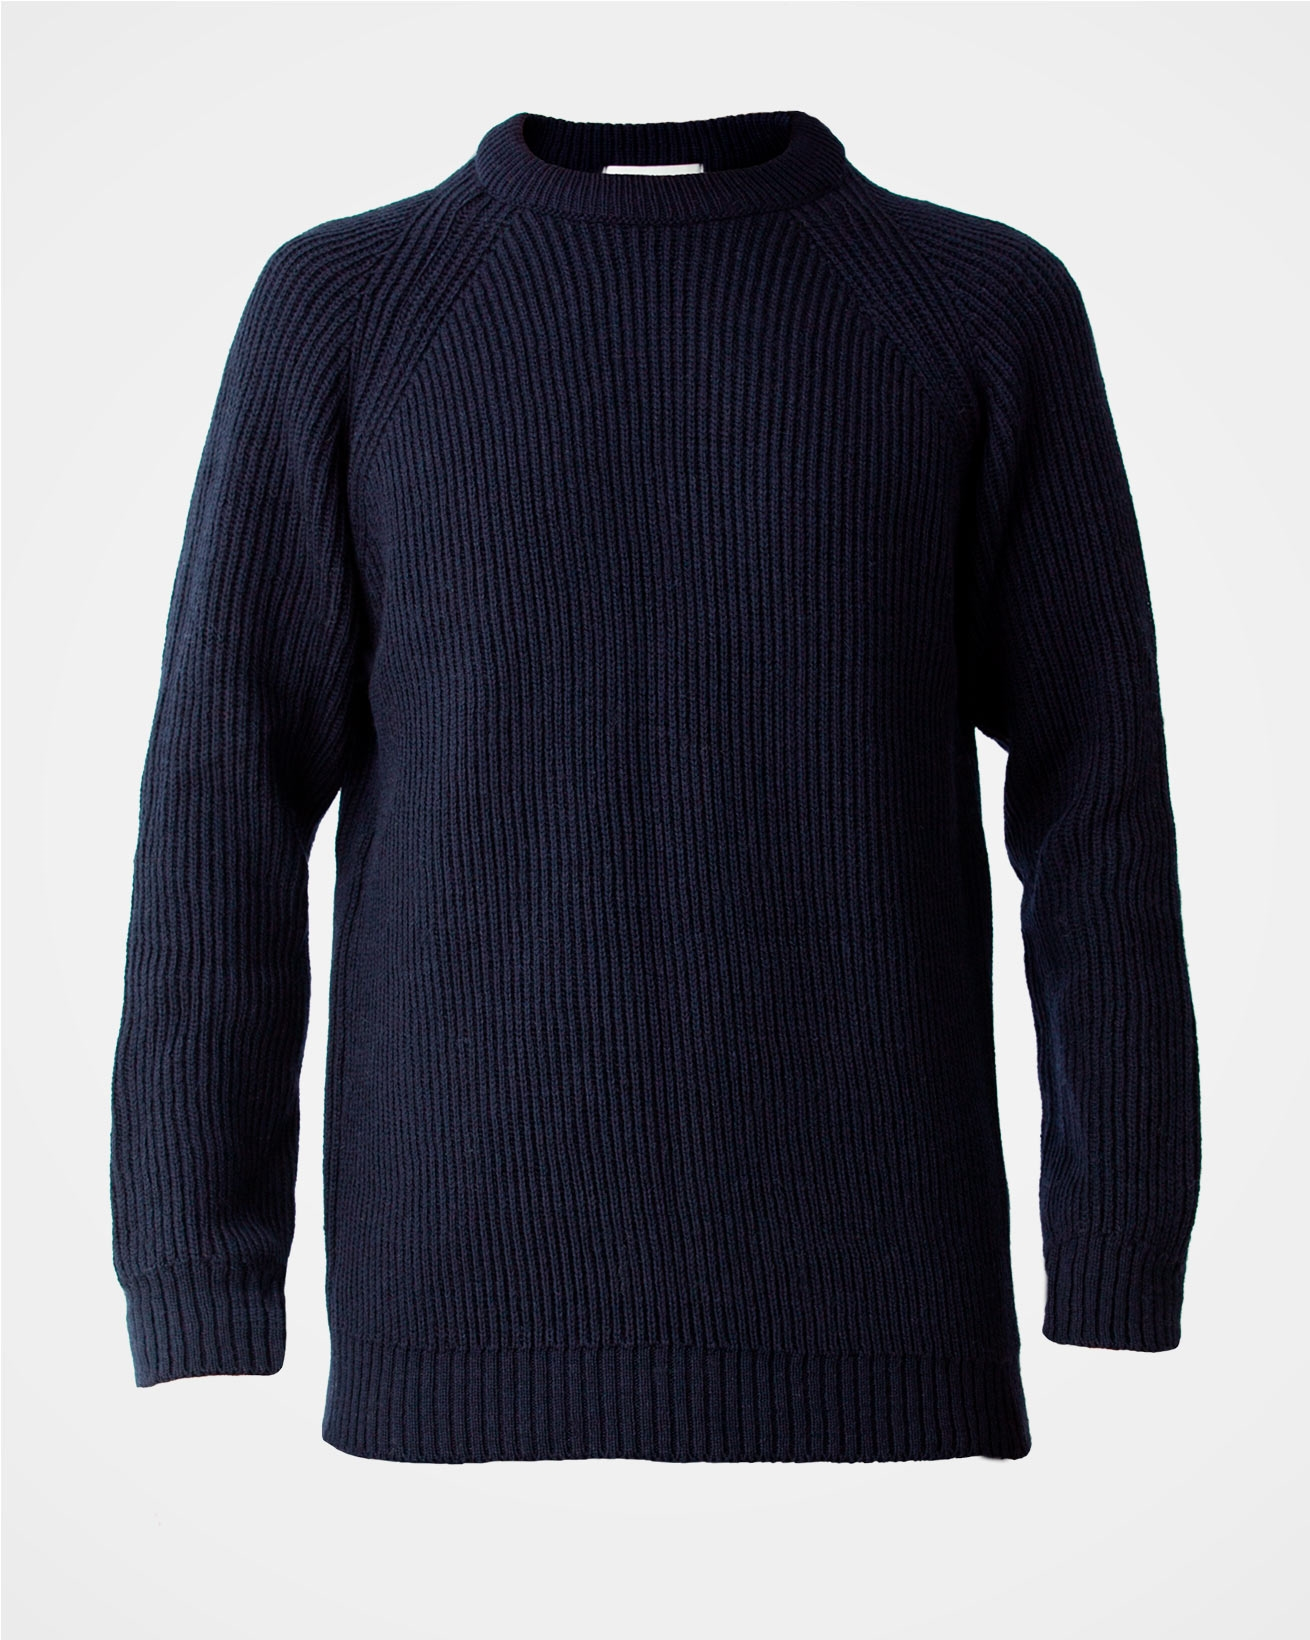 7616_mens-ribbed-fishermans-jumper_dark-navy_front..jpg